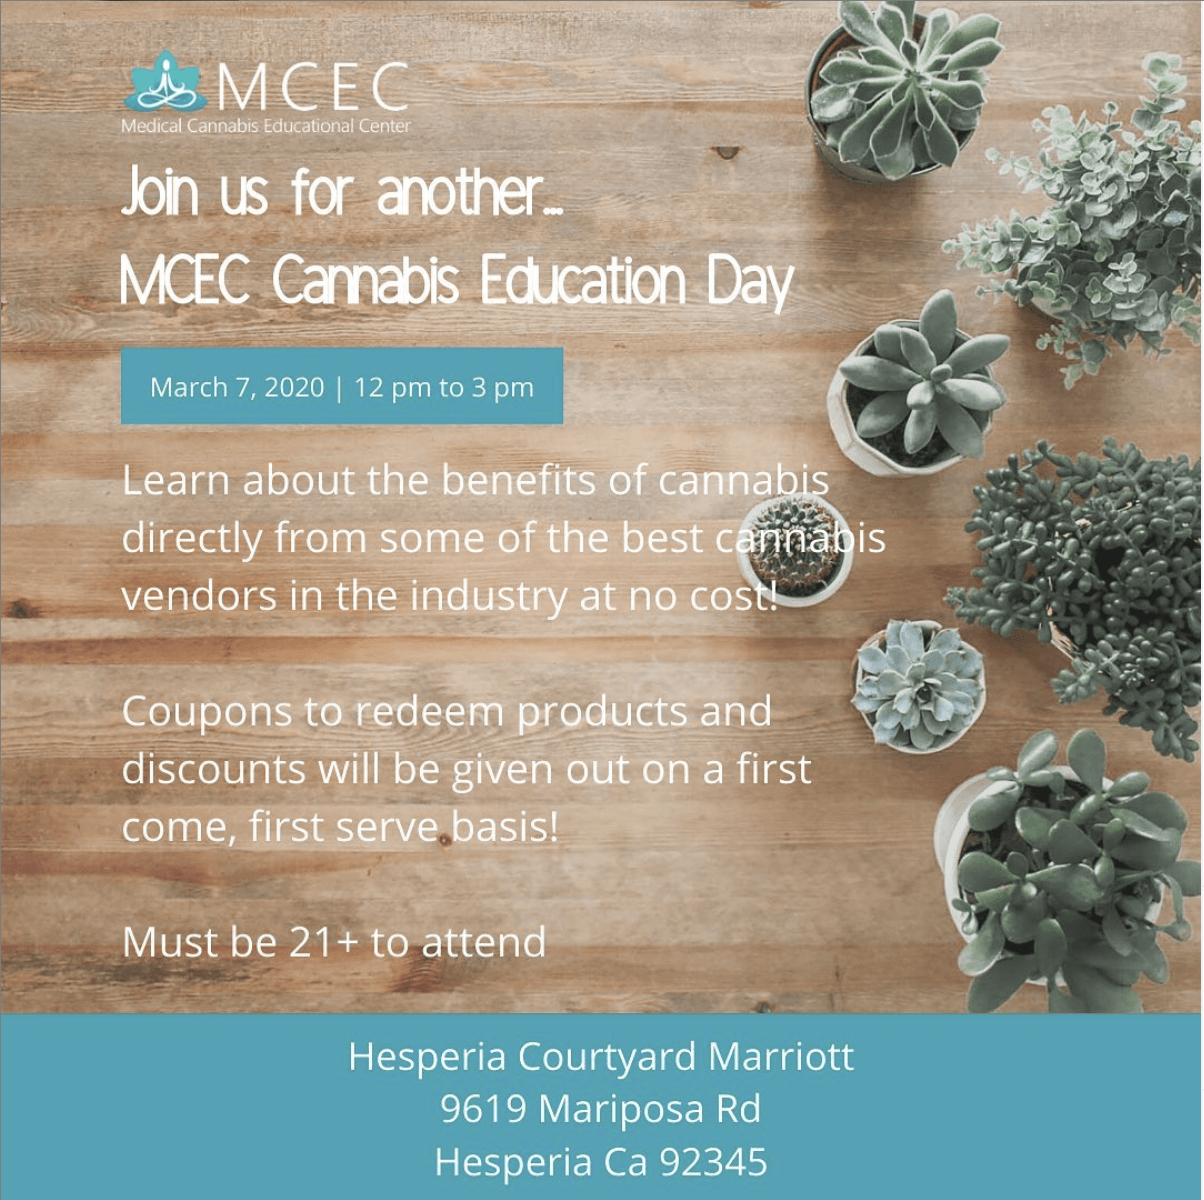 MCEC Cannabis Education Day